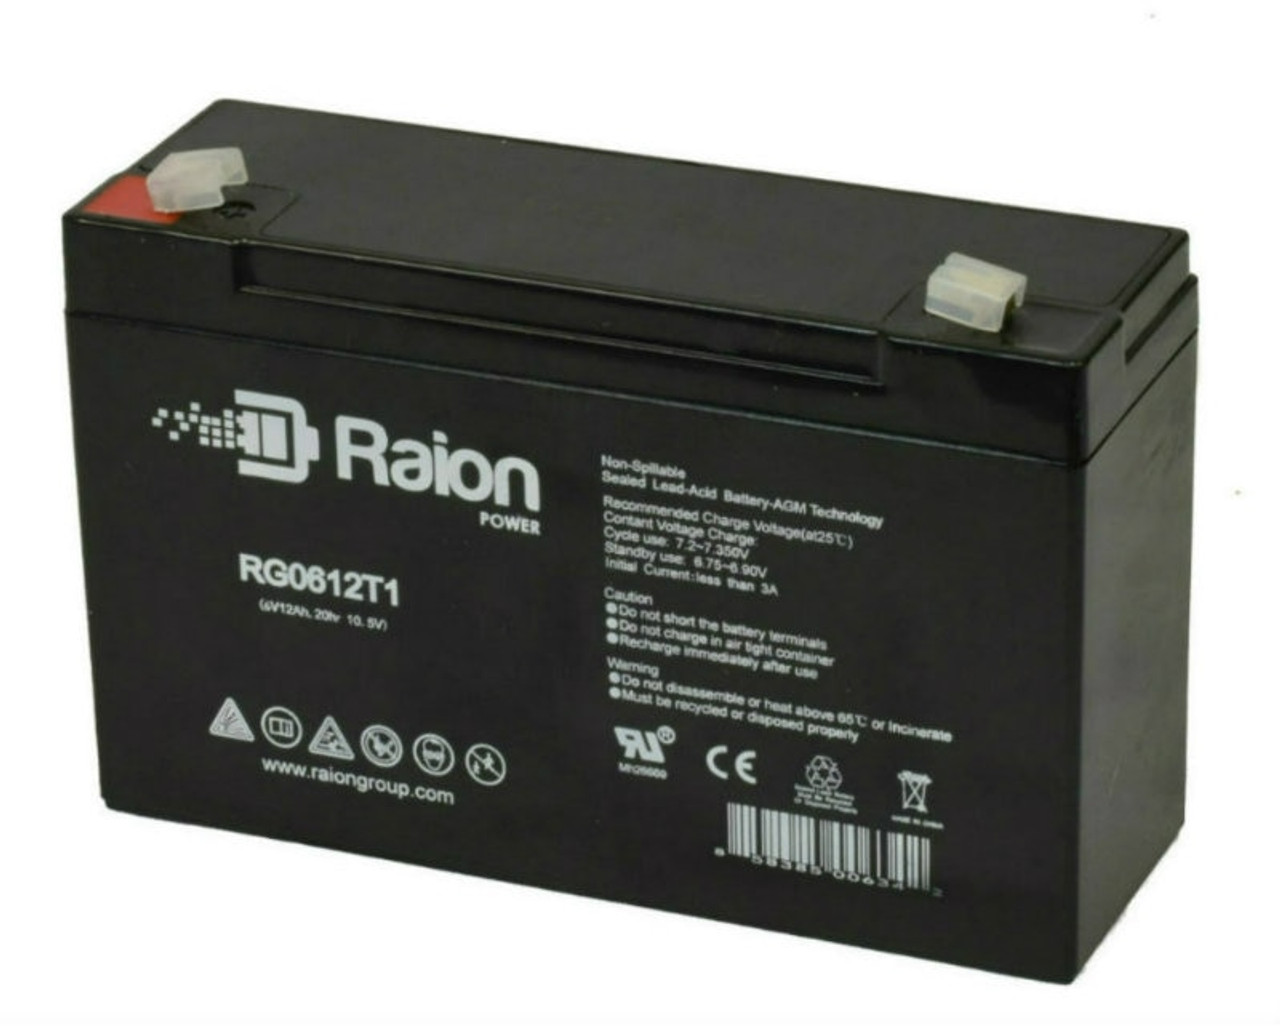 Raion Power RG06120T1 Replacement Battery Pack for Elsar 132 emergency light